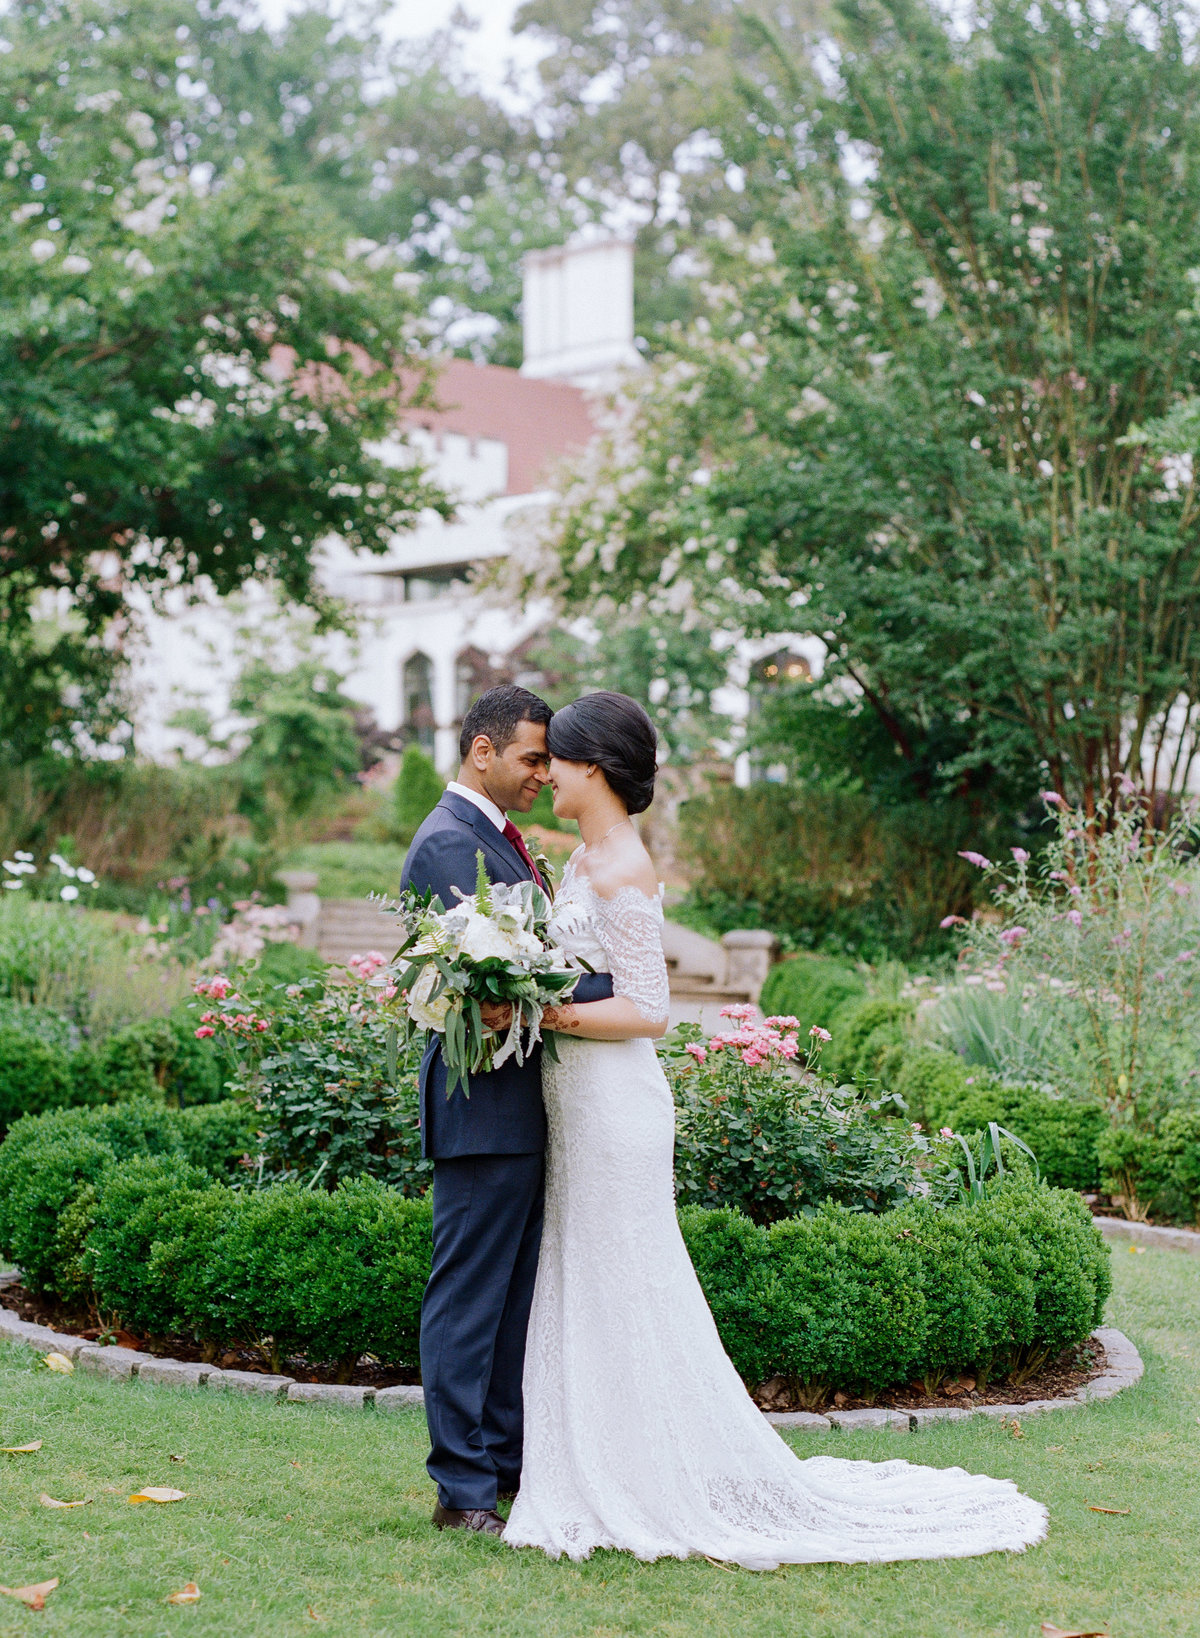 Summer Wedding at Callanwolde Fine Arts Center